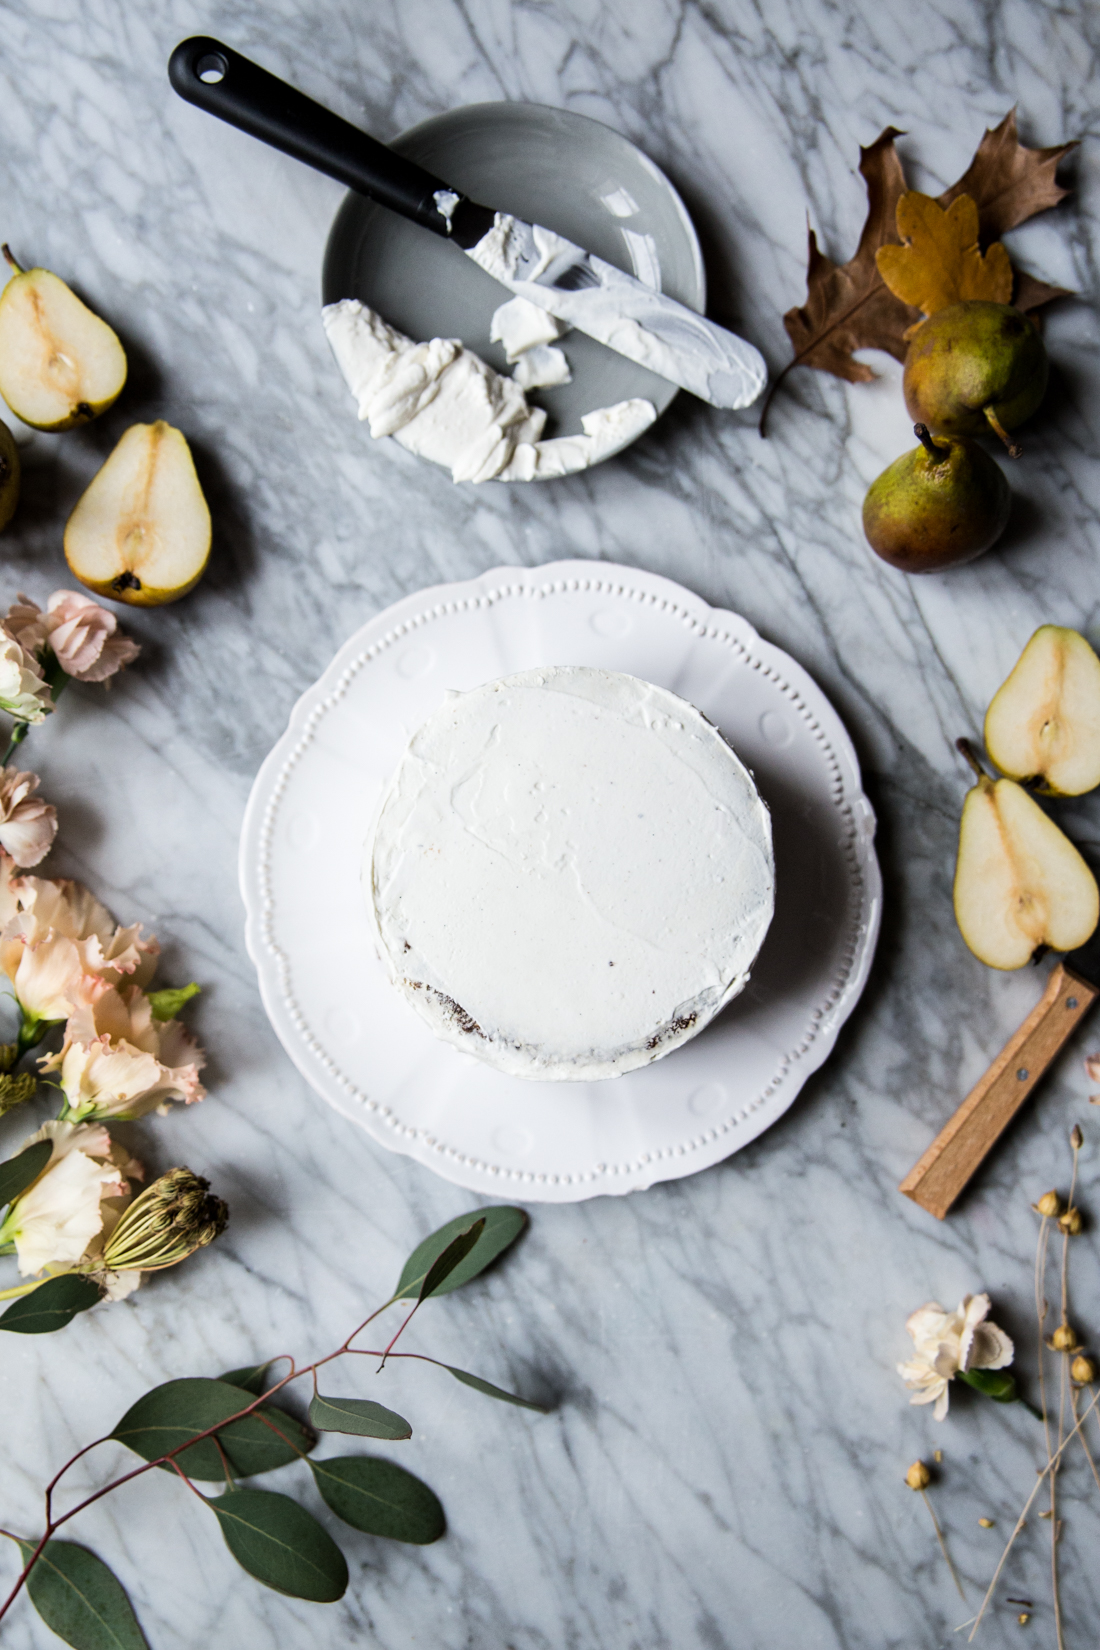 layer-cake-poires-cardamone-glacage-mascarpone-et-vanille-coulant-au-chocolat-ophelies-kitchen-book-ophelie-lauret-2